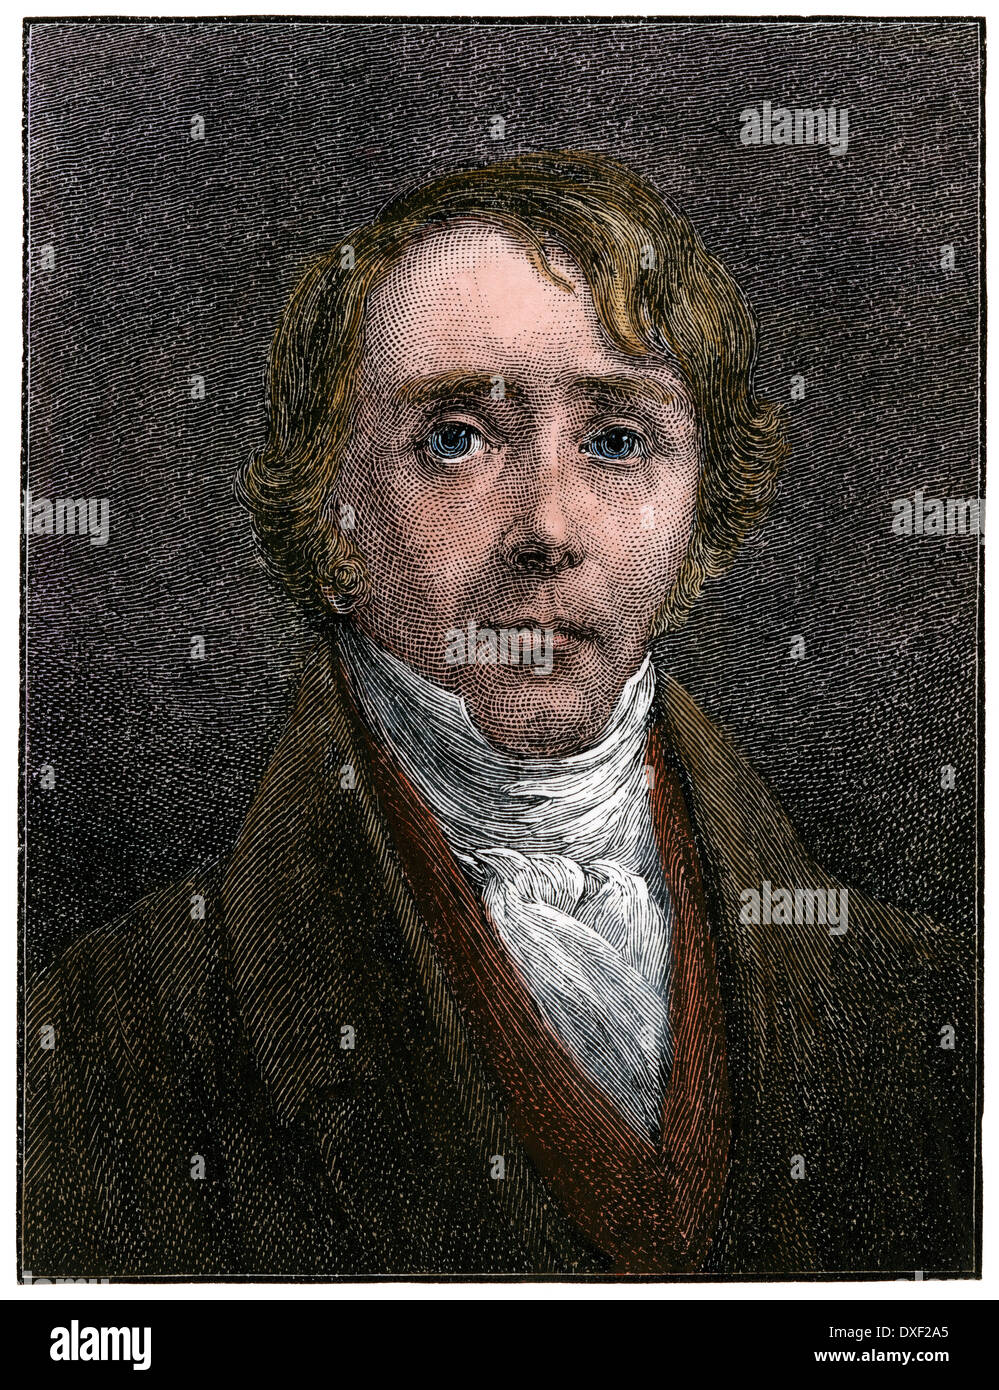 American abolitionist Reverend William Ellery Channing, 1800s. Hand-colored woodcut - Stock Image